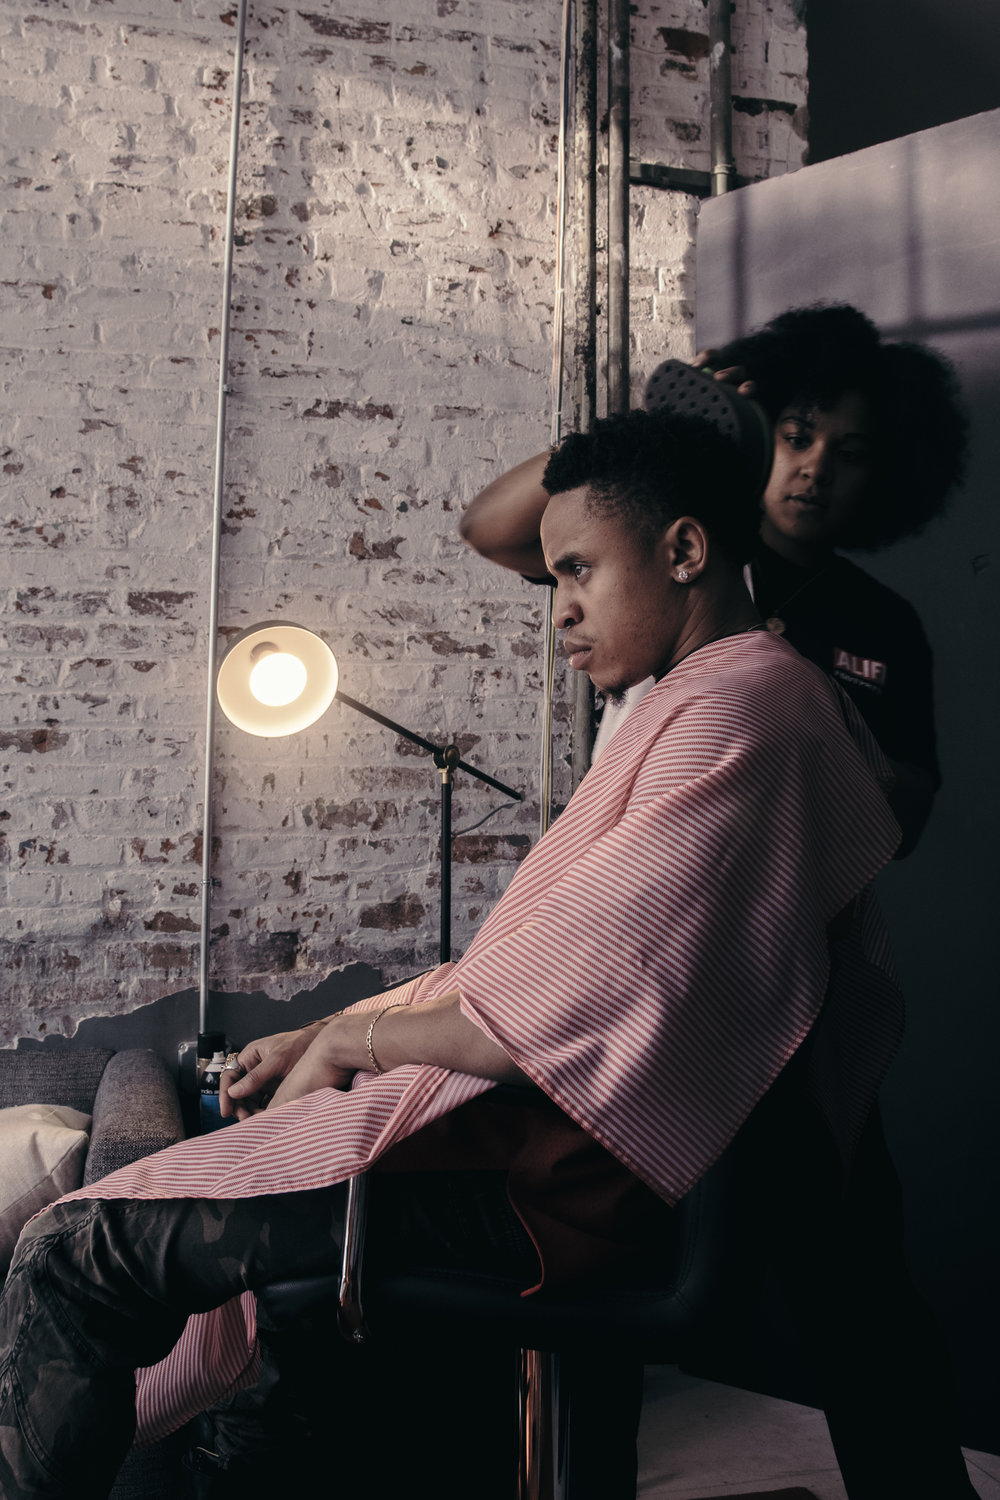 """""""The haircut is never complete without the Sponge Brush, my barber Alicia always makes sure the curls are just right!"""""""